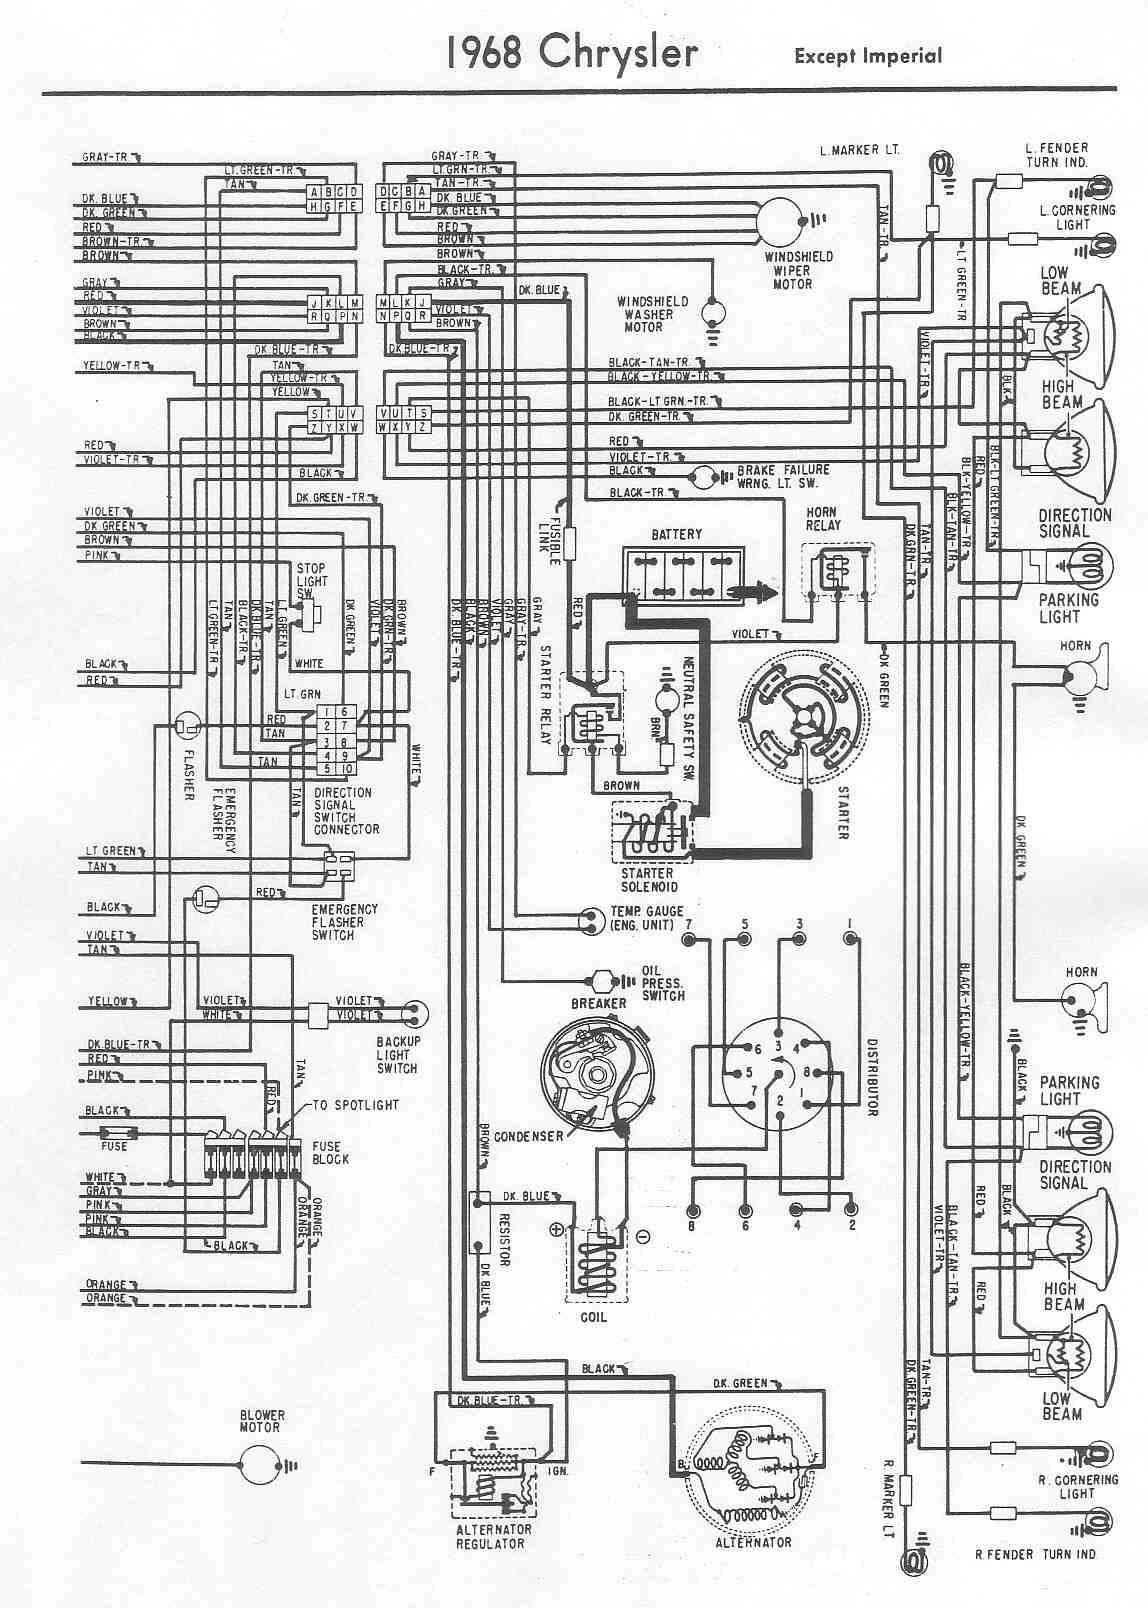 Wiring Diagram For 1966 Plymouth Valiant Diagrams 68 1970 1968